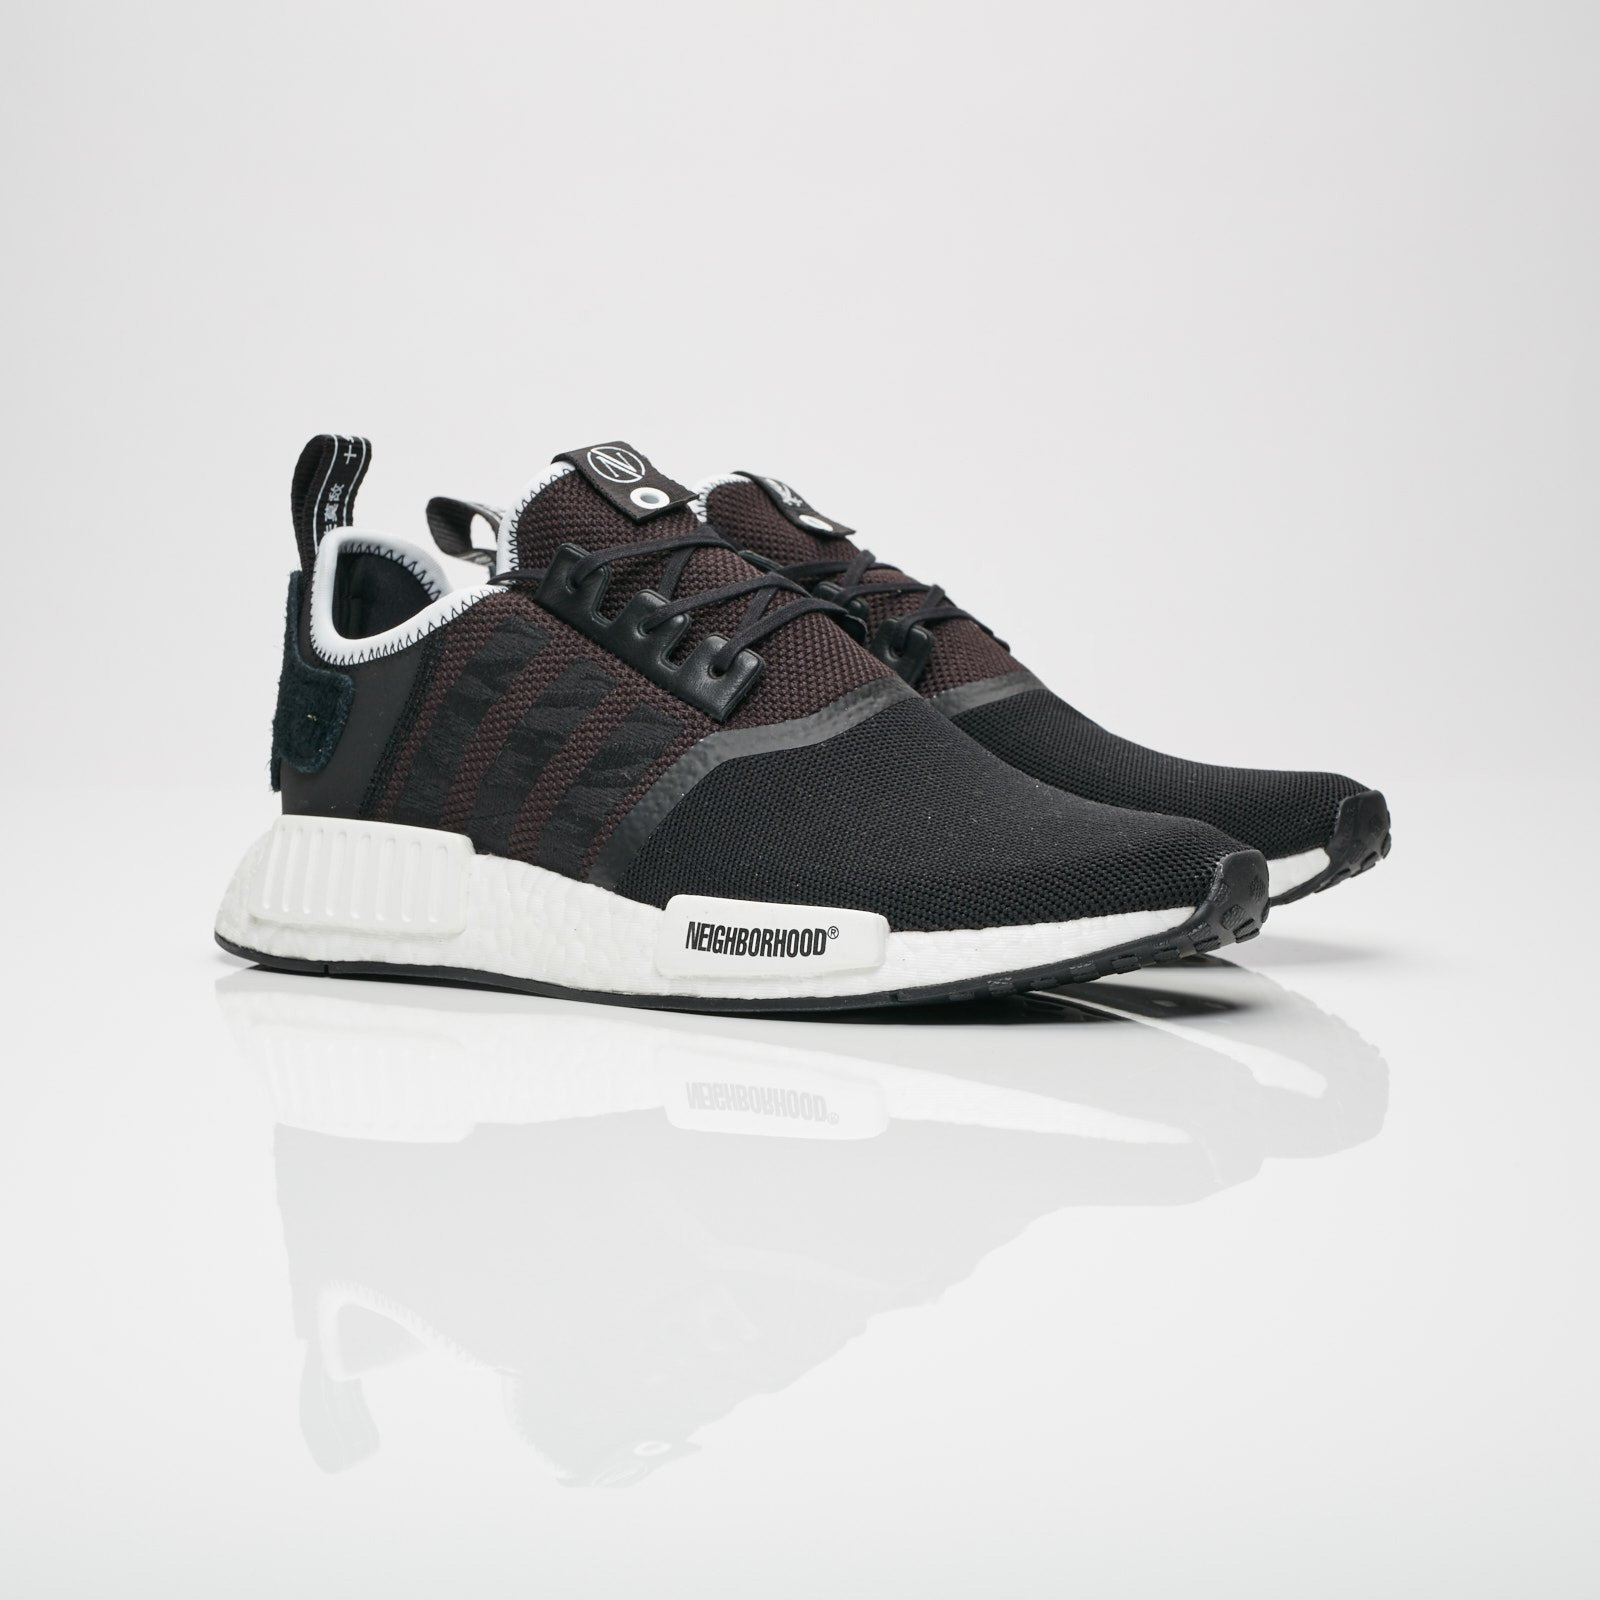 premium selection 96b03 0adf2 adidas NMD R1 | Invincible x Neighborhood - Cq1775 ...